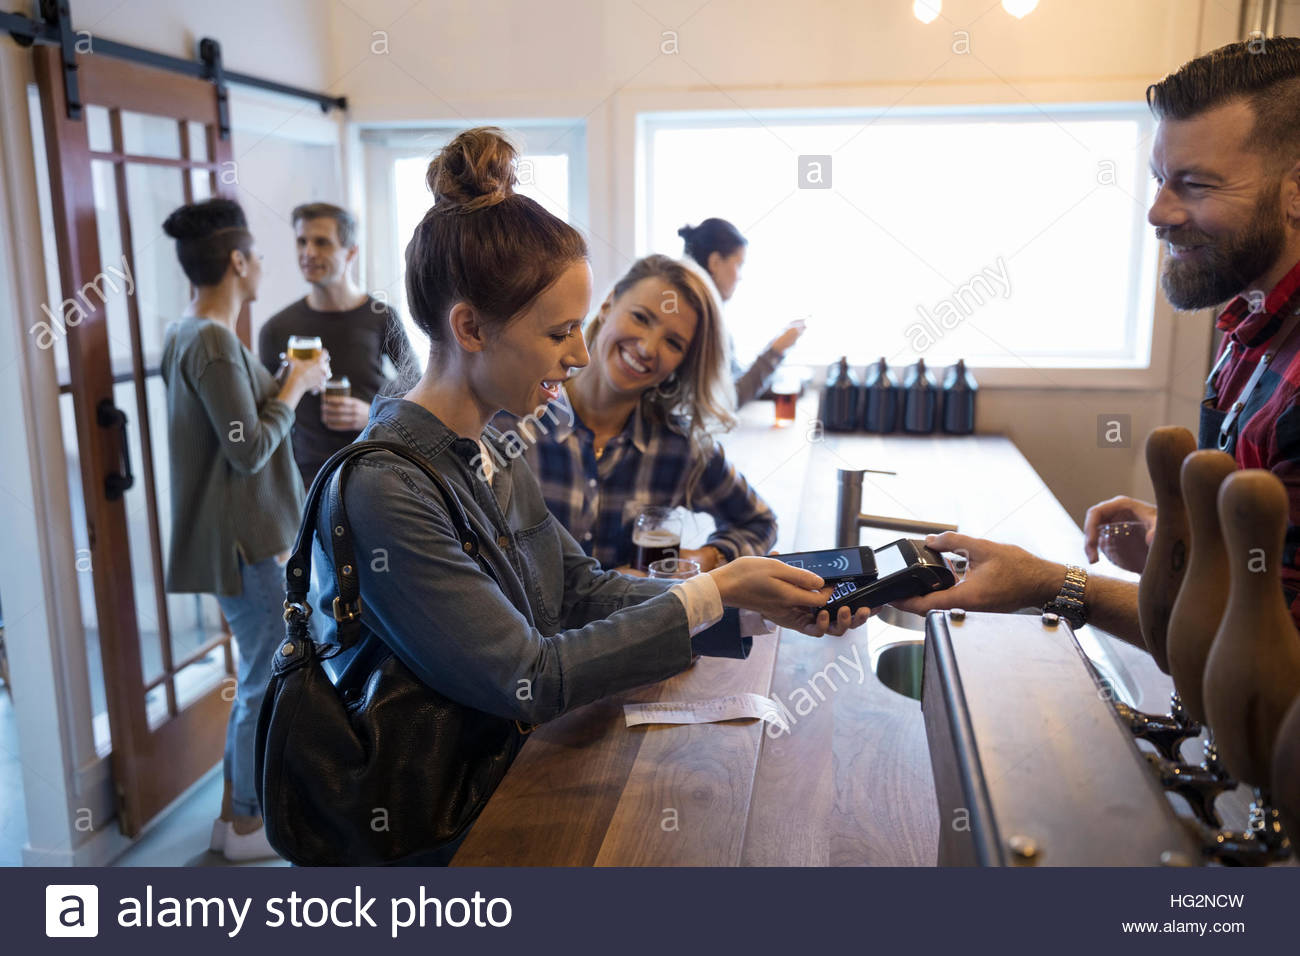 Female friends paying bartender for beers with smart phone contactless payment in brewery tasting room - Stock Image